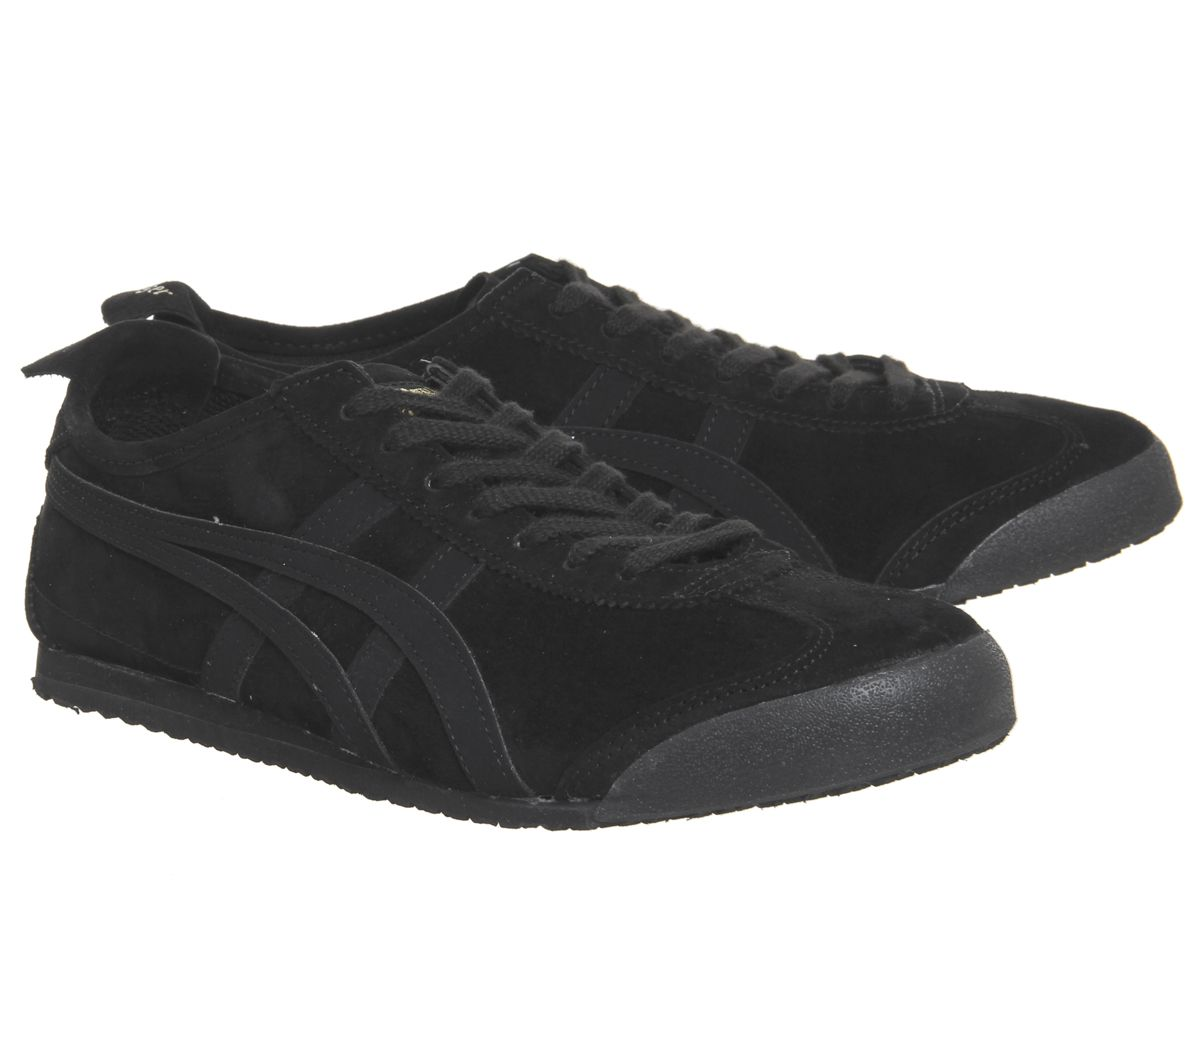 a40533b2f89 Sentinel Onitsuka Tiger Mexico 66 Trainers Black Black Trainers Shoes